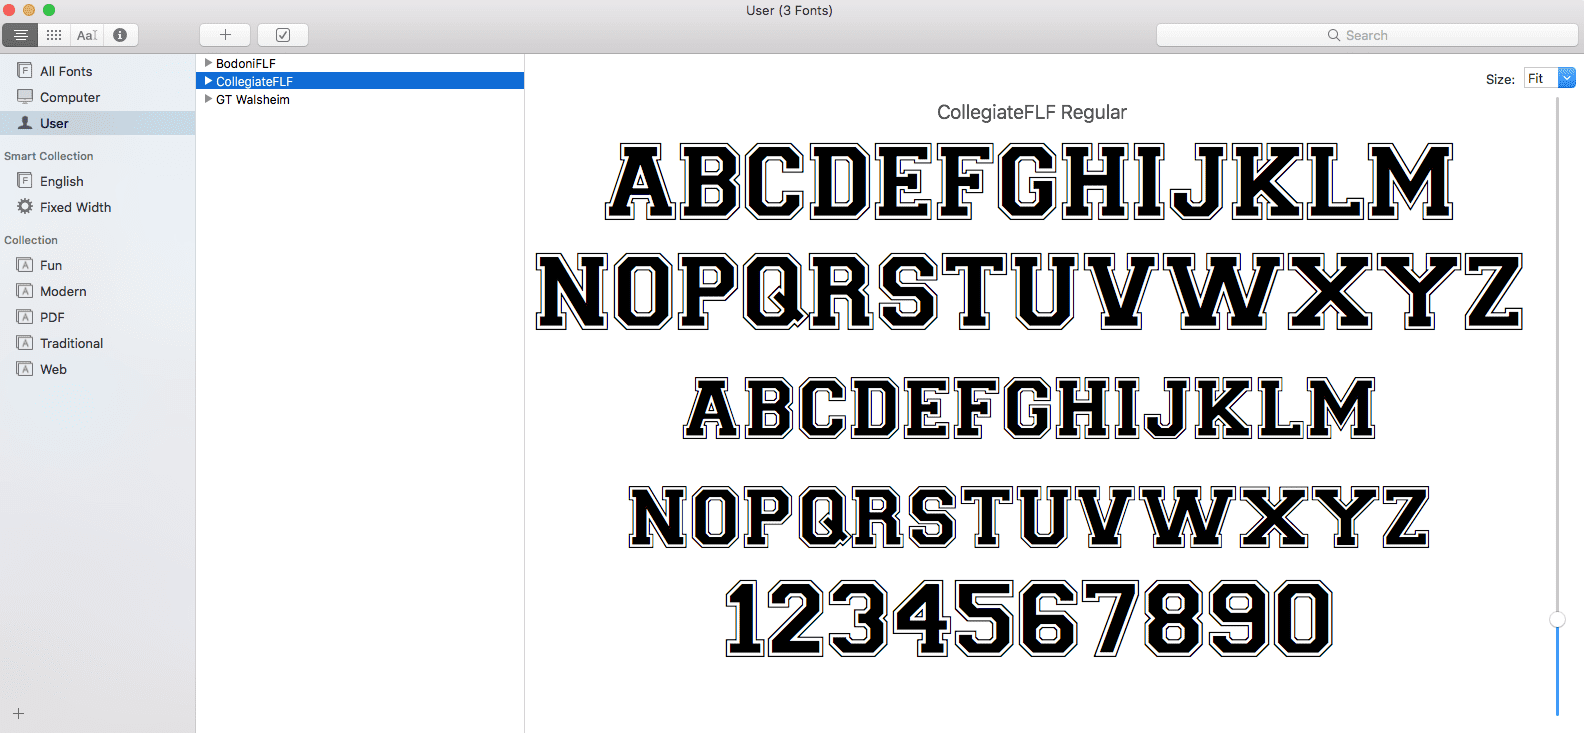 Installed Font Mac